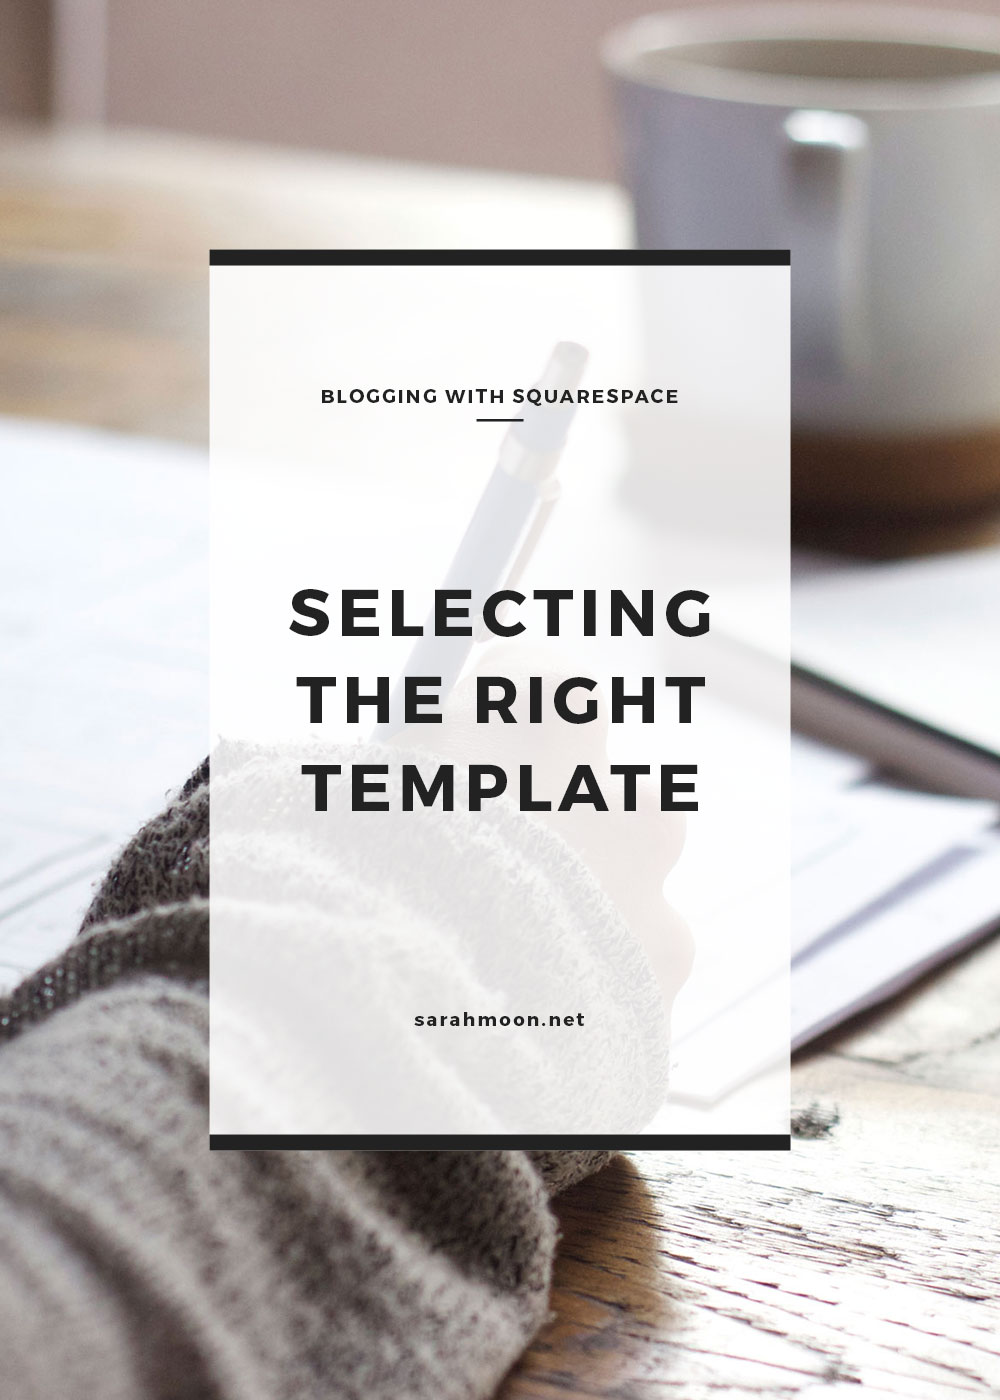 Squarespace for Bloggers & Publishers: Part 1 - Choosing the Right Template